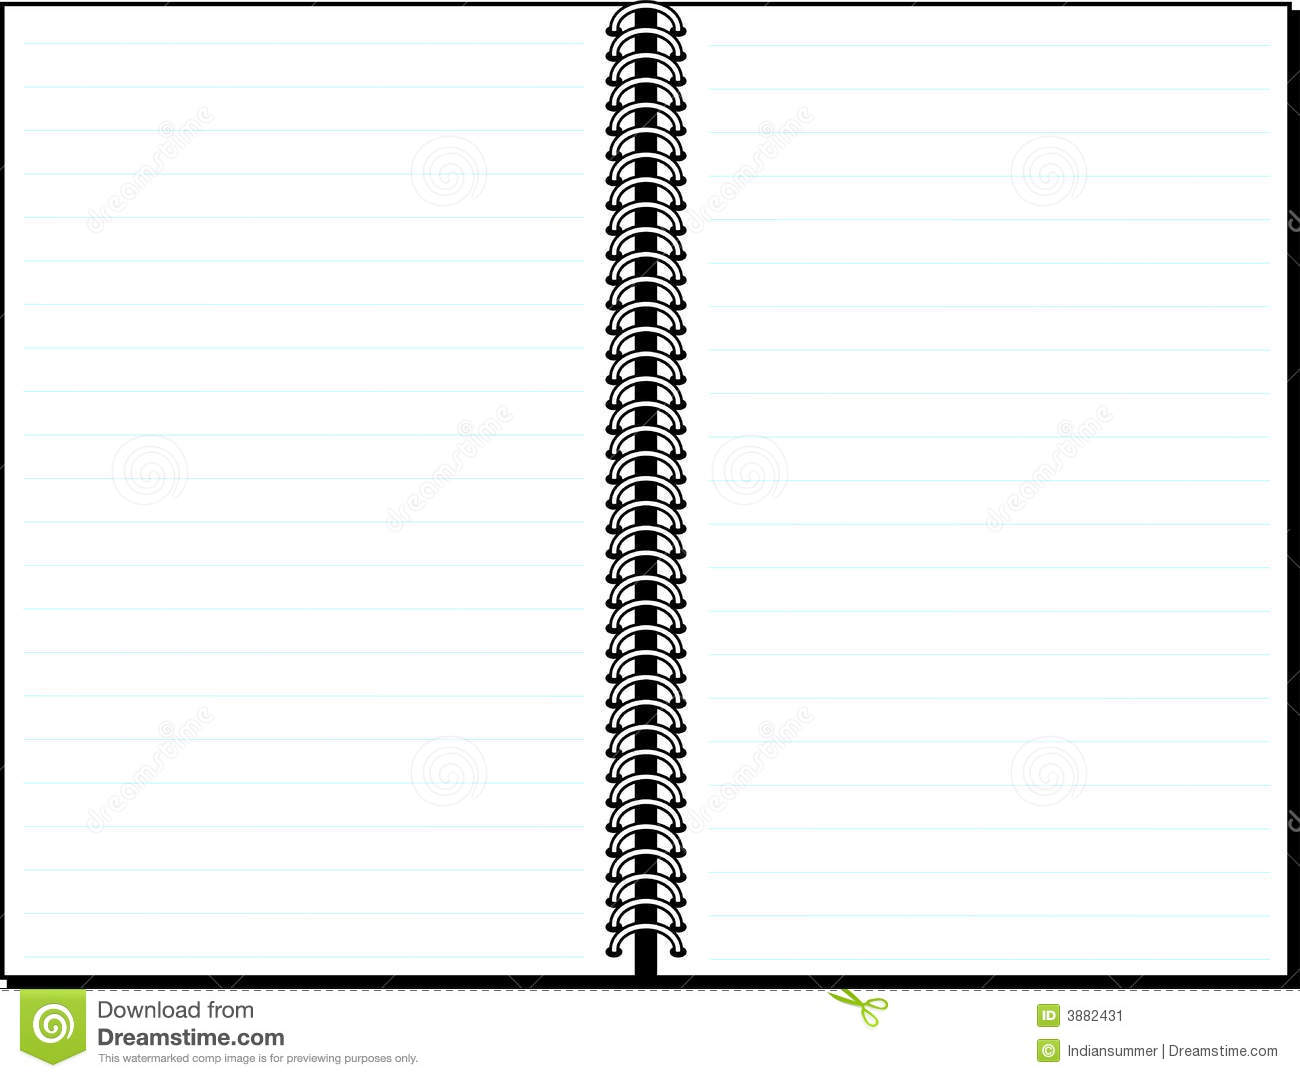 Blank Lined Notebook Background Stock Image - Image: 3882431